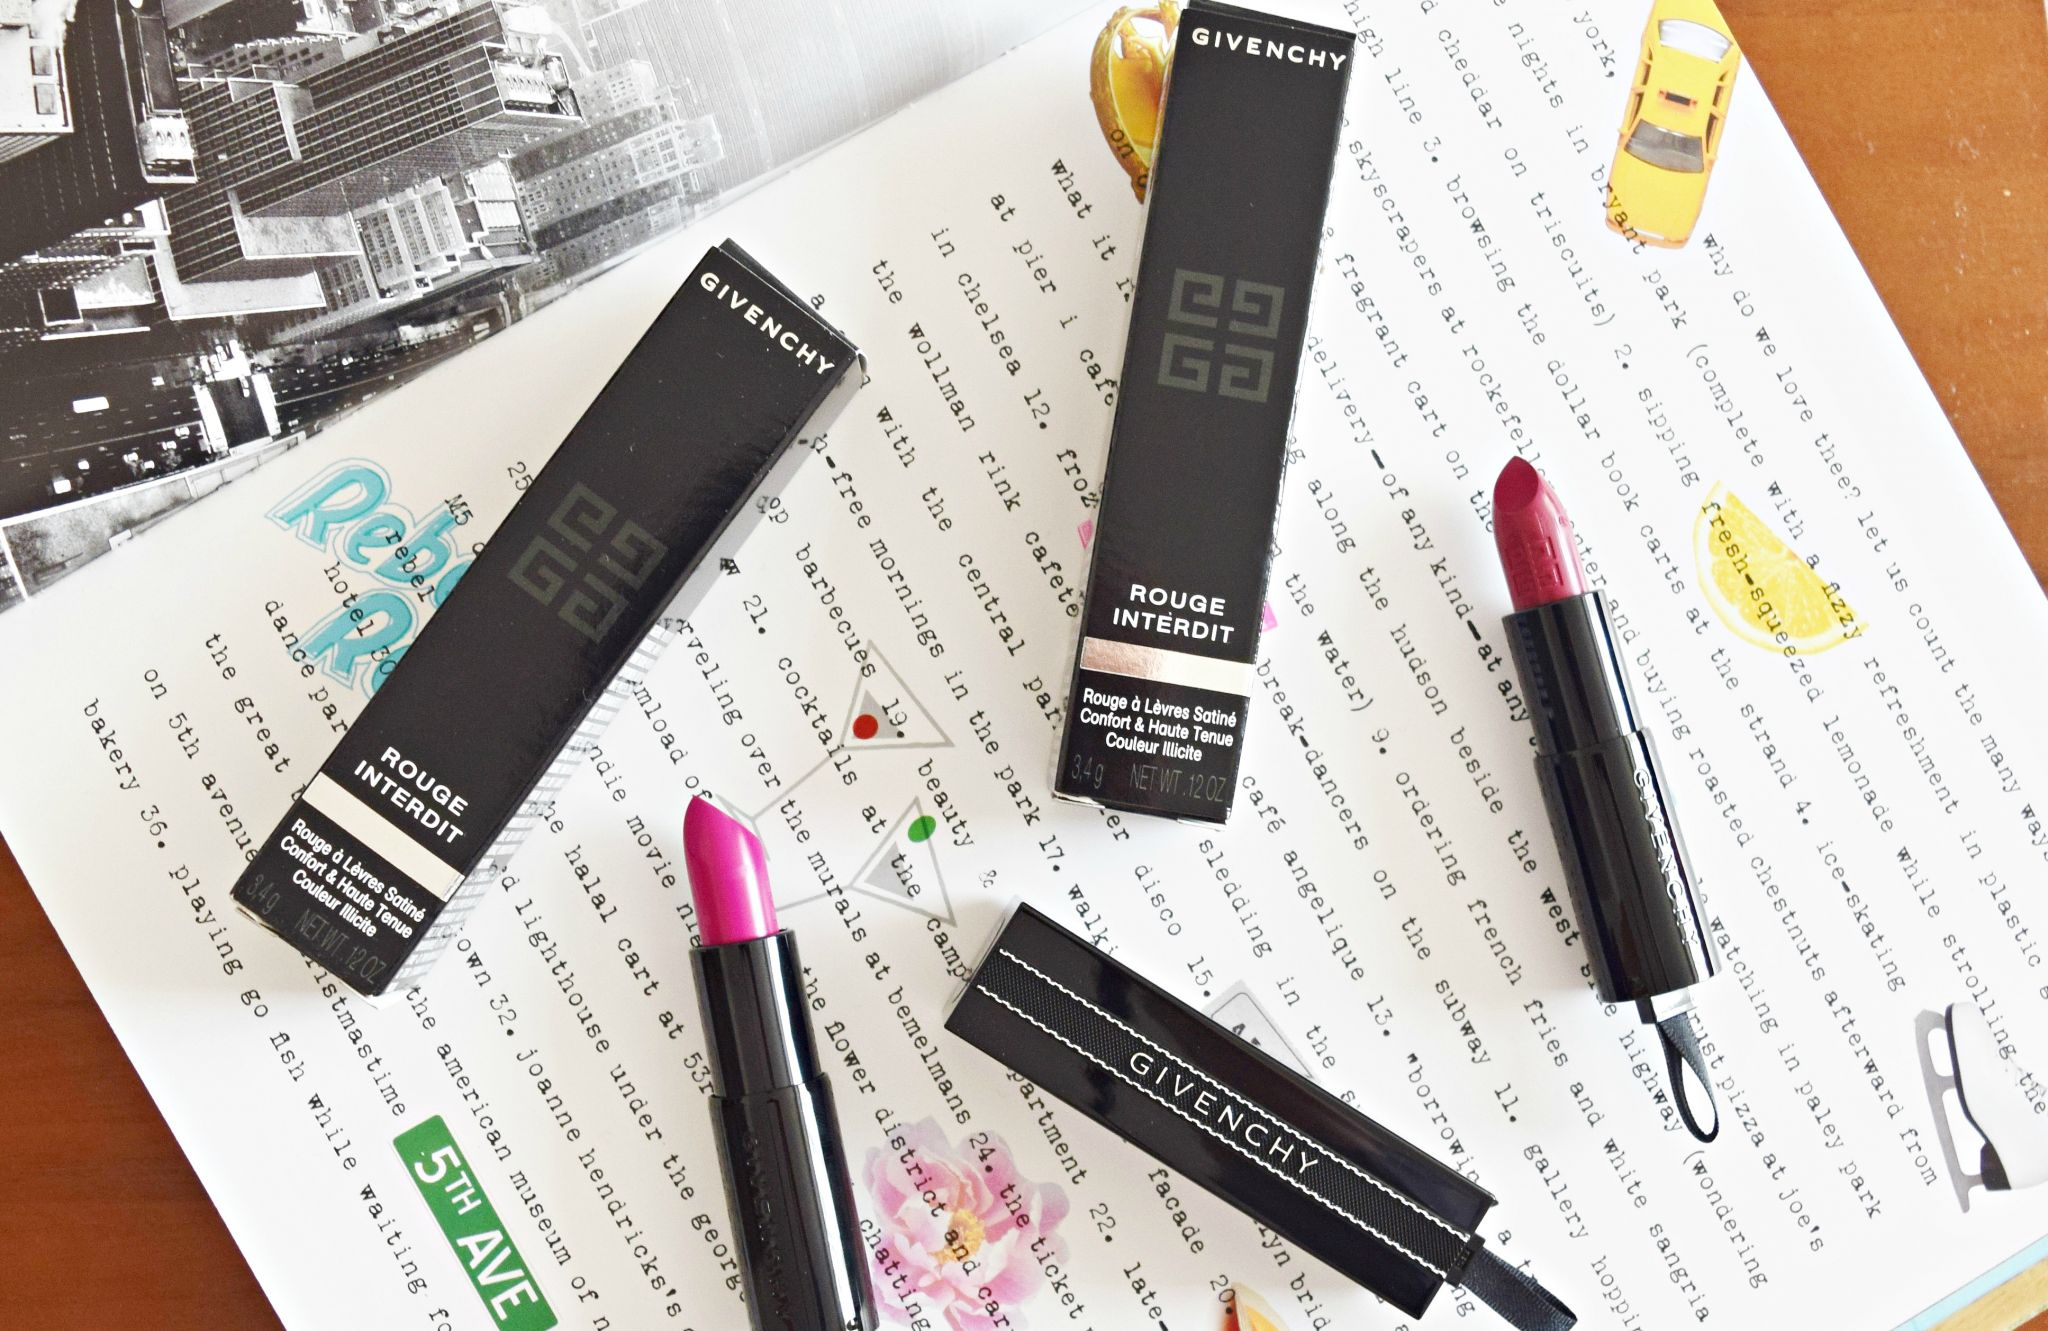 givenchy rouge interdit lipsticks